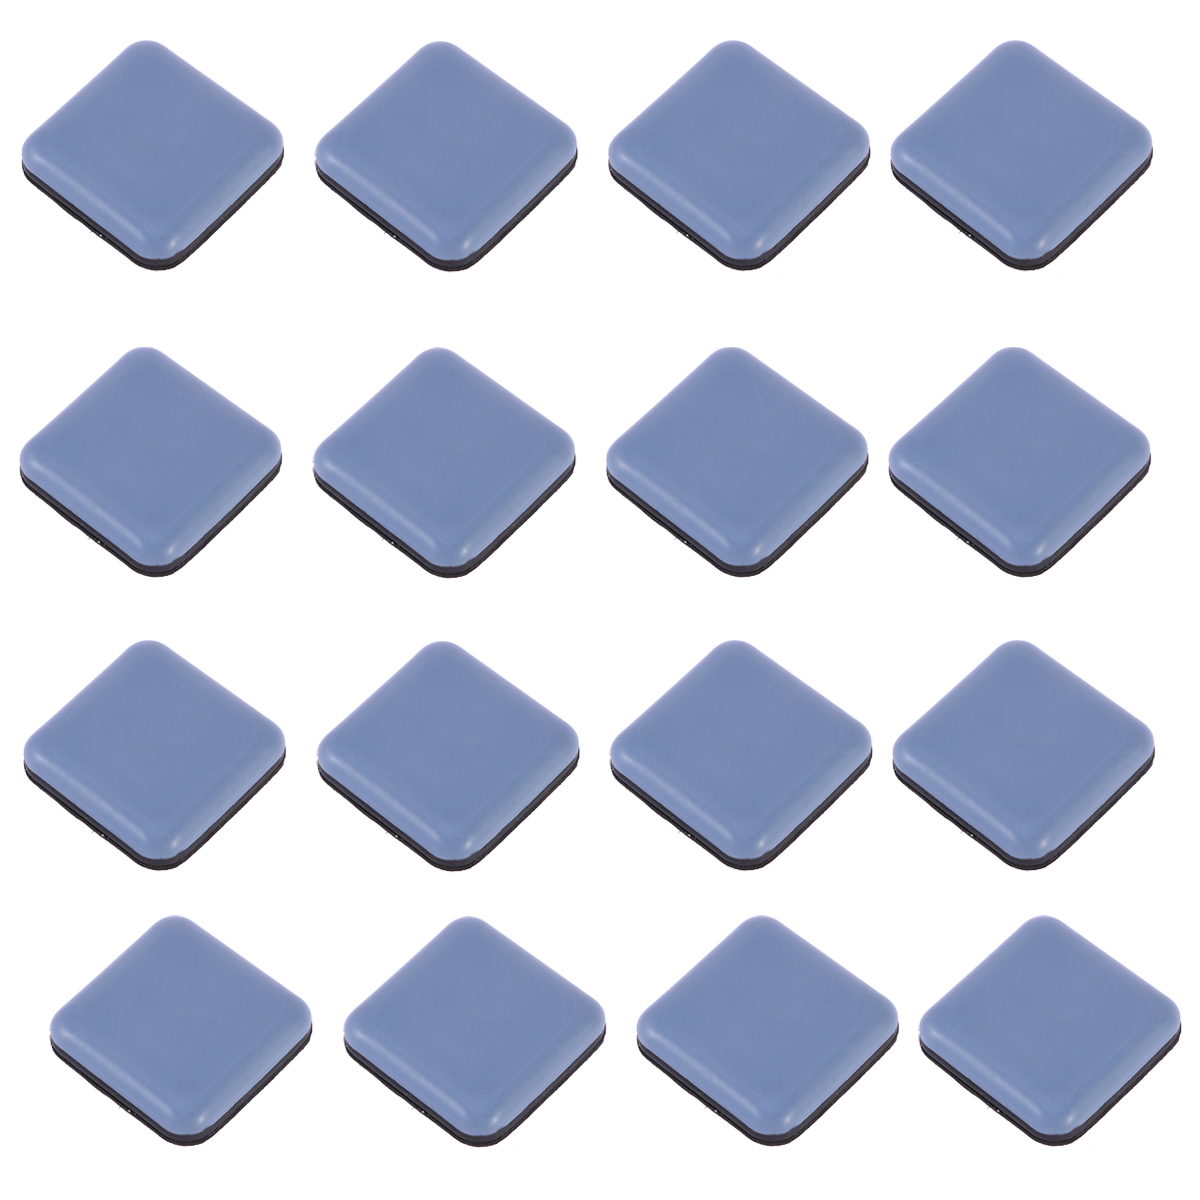 Pack Of 16 Easy To Move Thicken Silent Self-adhesive Floor Protectors Pad Feet Cover Leg Bottom For Furniture Chair Table